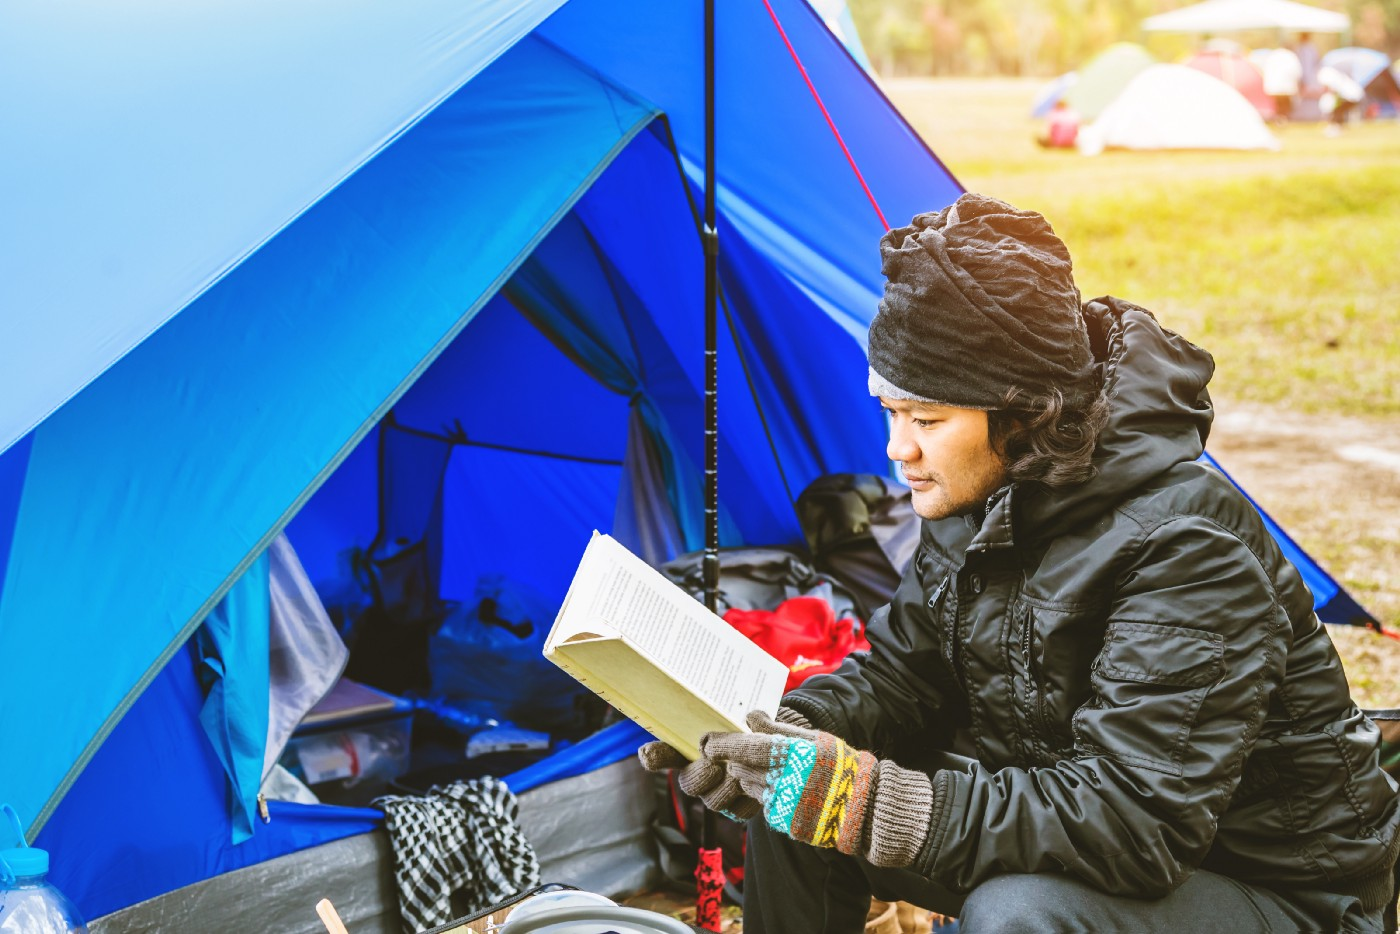 A man camping and reading.